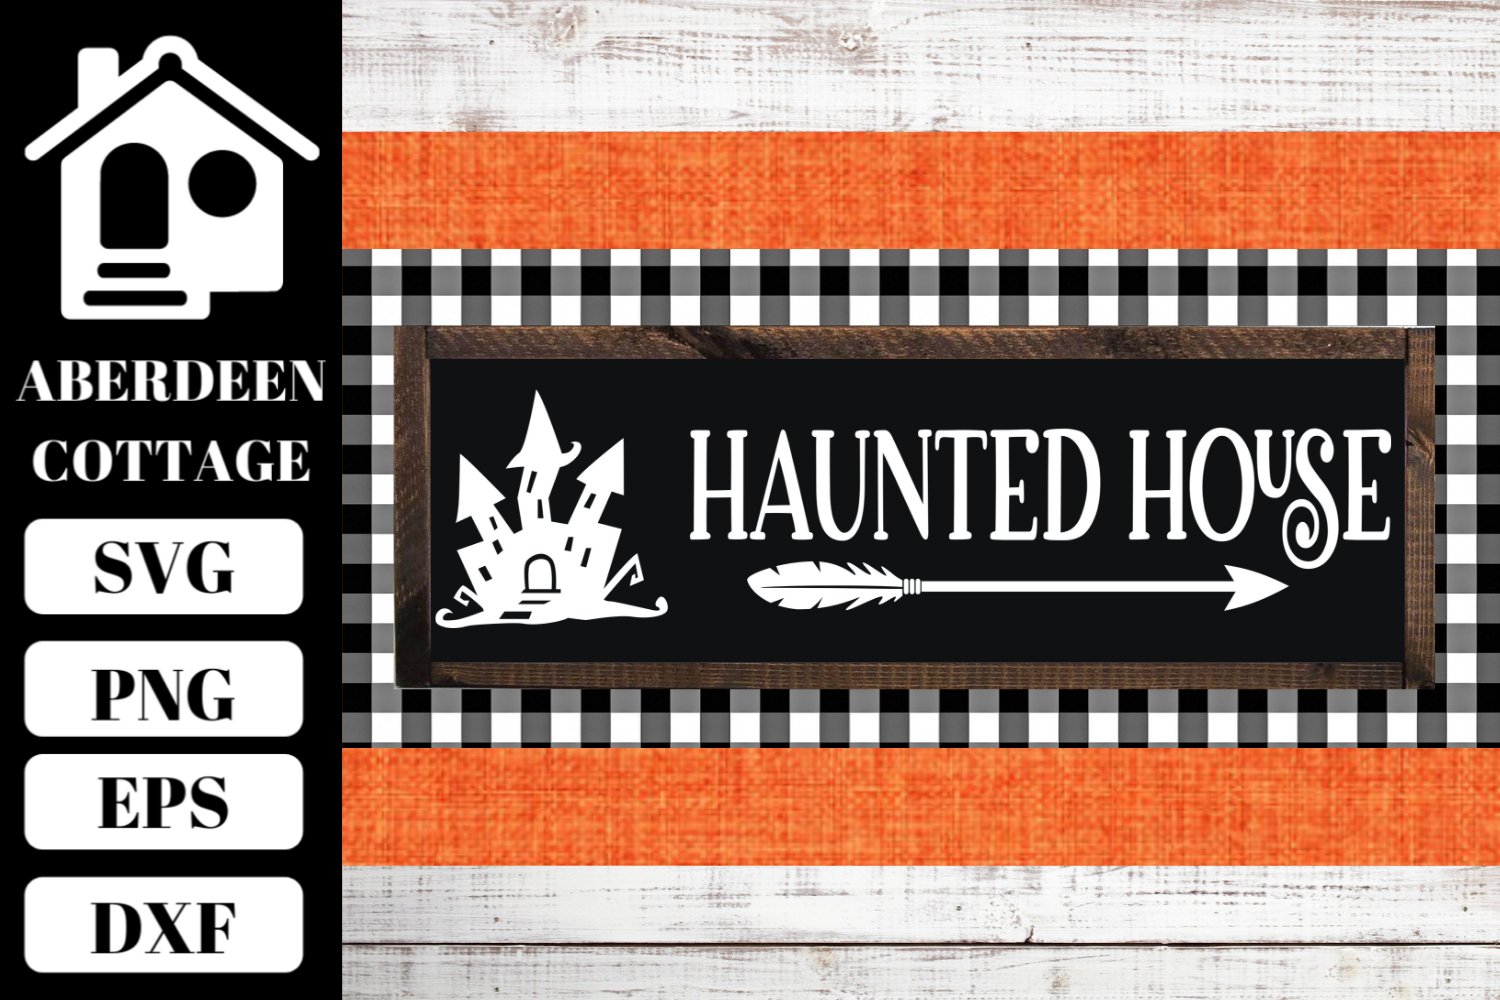 Haunted House 2 SVG example image 1